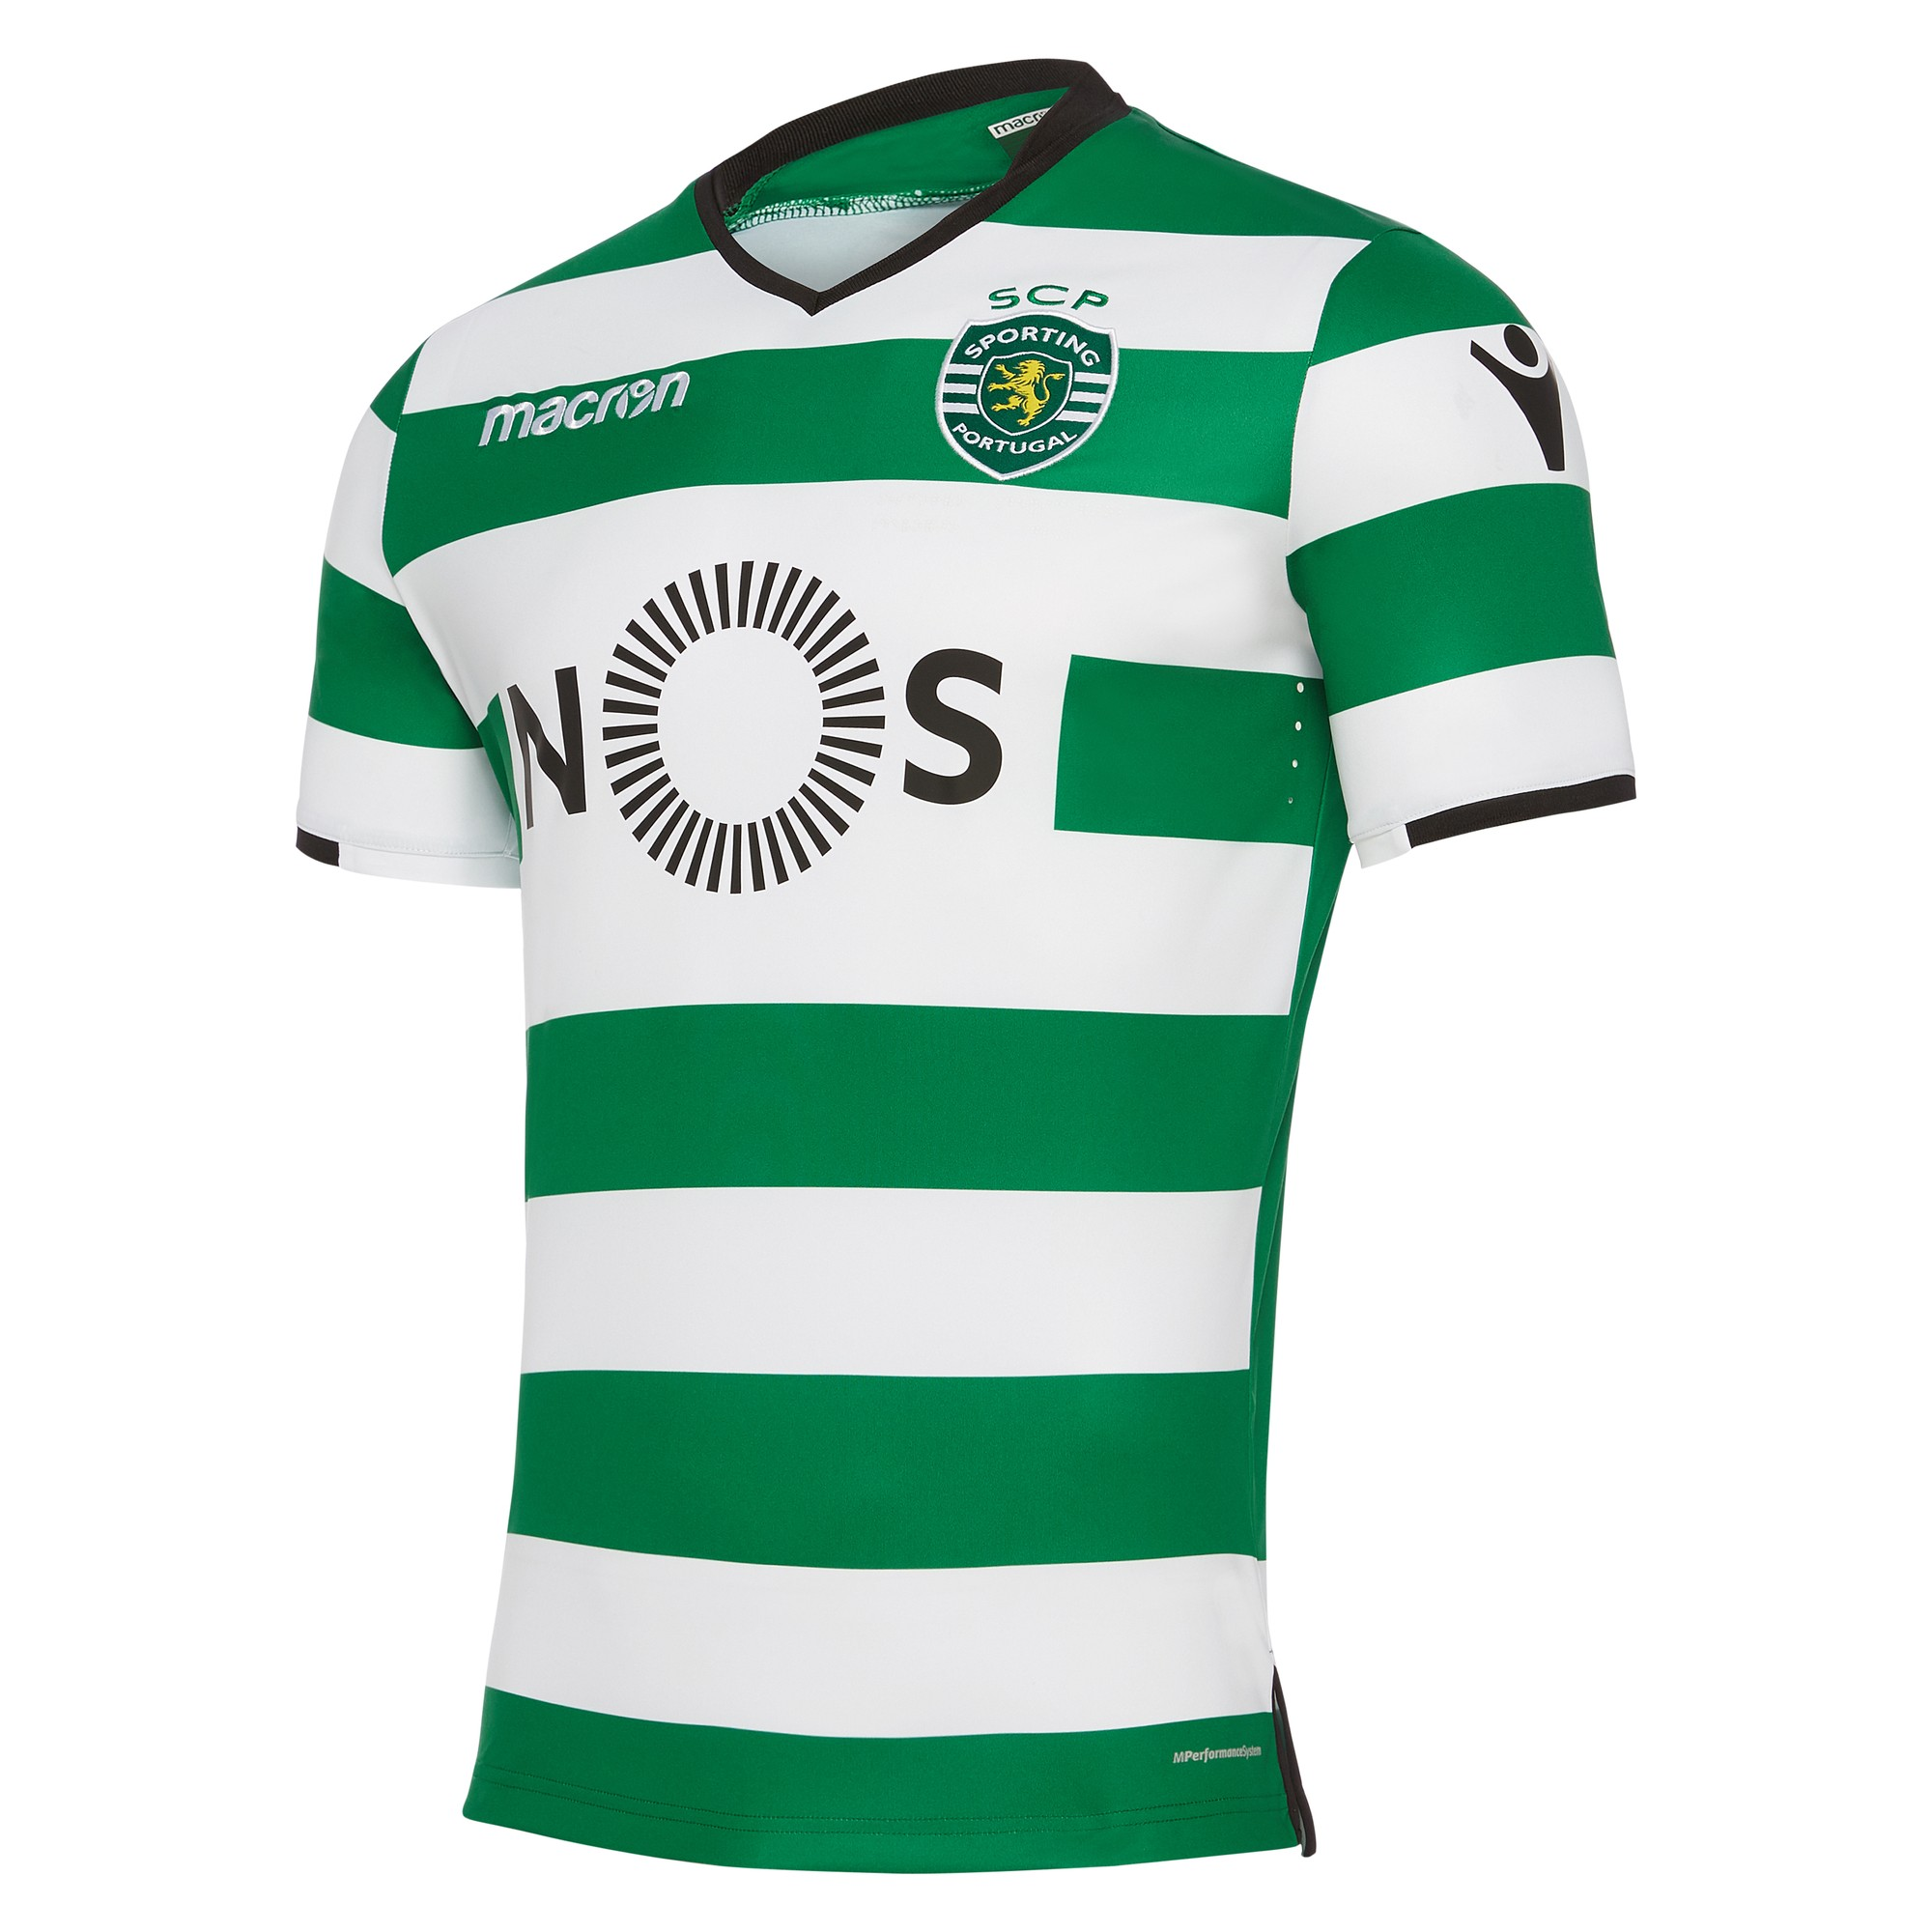 Sporting clube de portugal 2017/18 adultsu0027 home match jersey - Sporting Clube De Portugal PNG